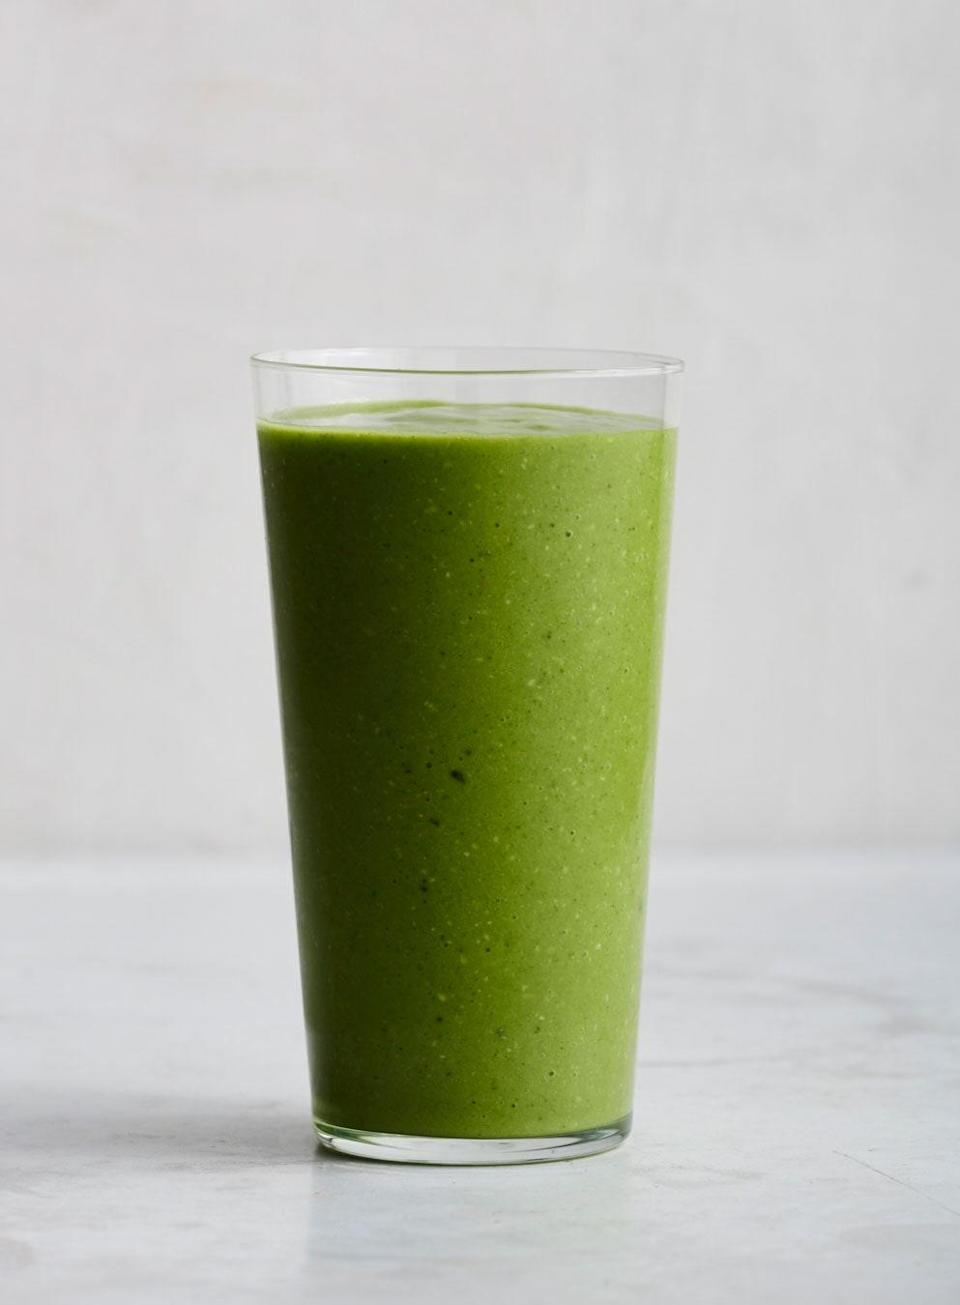 """Sub spinach for kale if you like. <a href=""""https://www.bonappetit.com/recipe/avocado-kale-pineapple-and-coconut-smoothie?mbid=synd_yahoo_rss"""" rel=""""nofollow noopener"""" target=""""_blank"""" data-ylk=""""slk:See recipe."""" class=""""link rapid-noclick-resp"""">See recipe.</a>"""